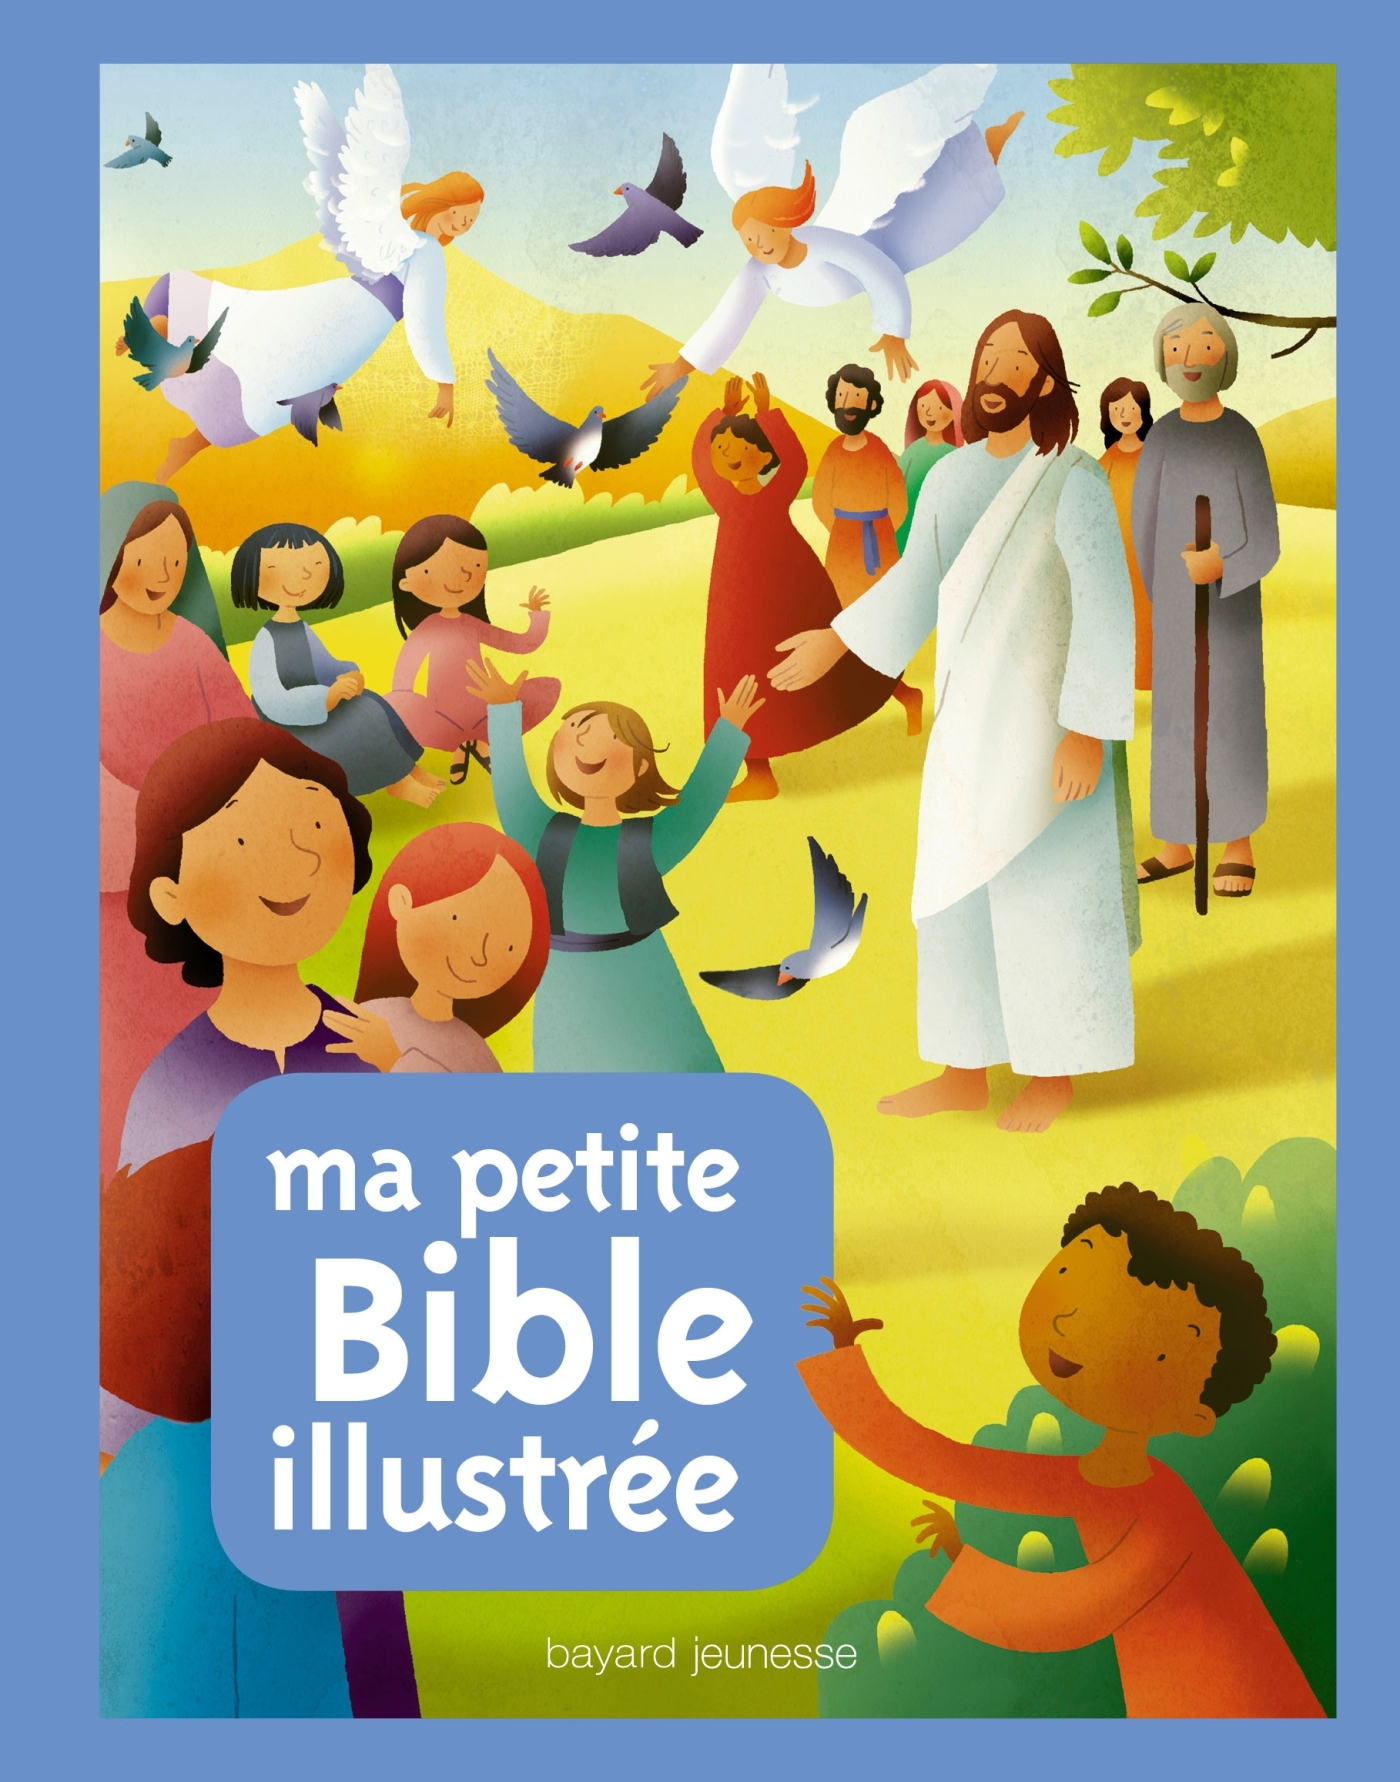 MA PETITE BIBLE ILLUSTREE